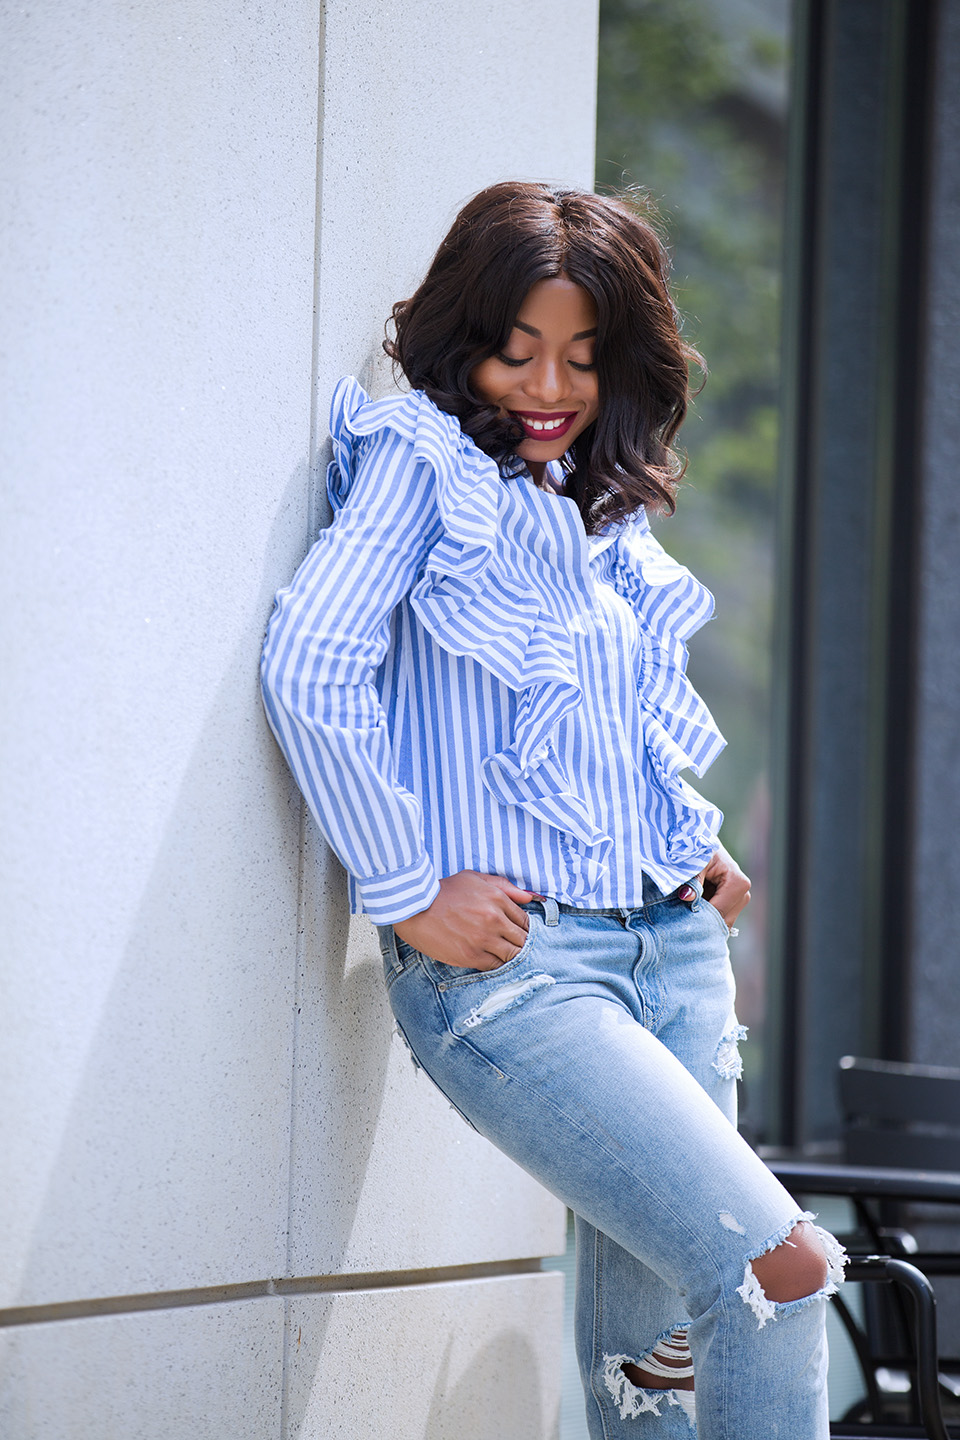 Ruffle blouse, express girlfriend jeans, www.jadore-fashion.com